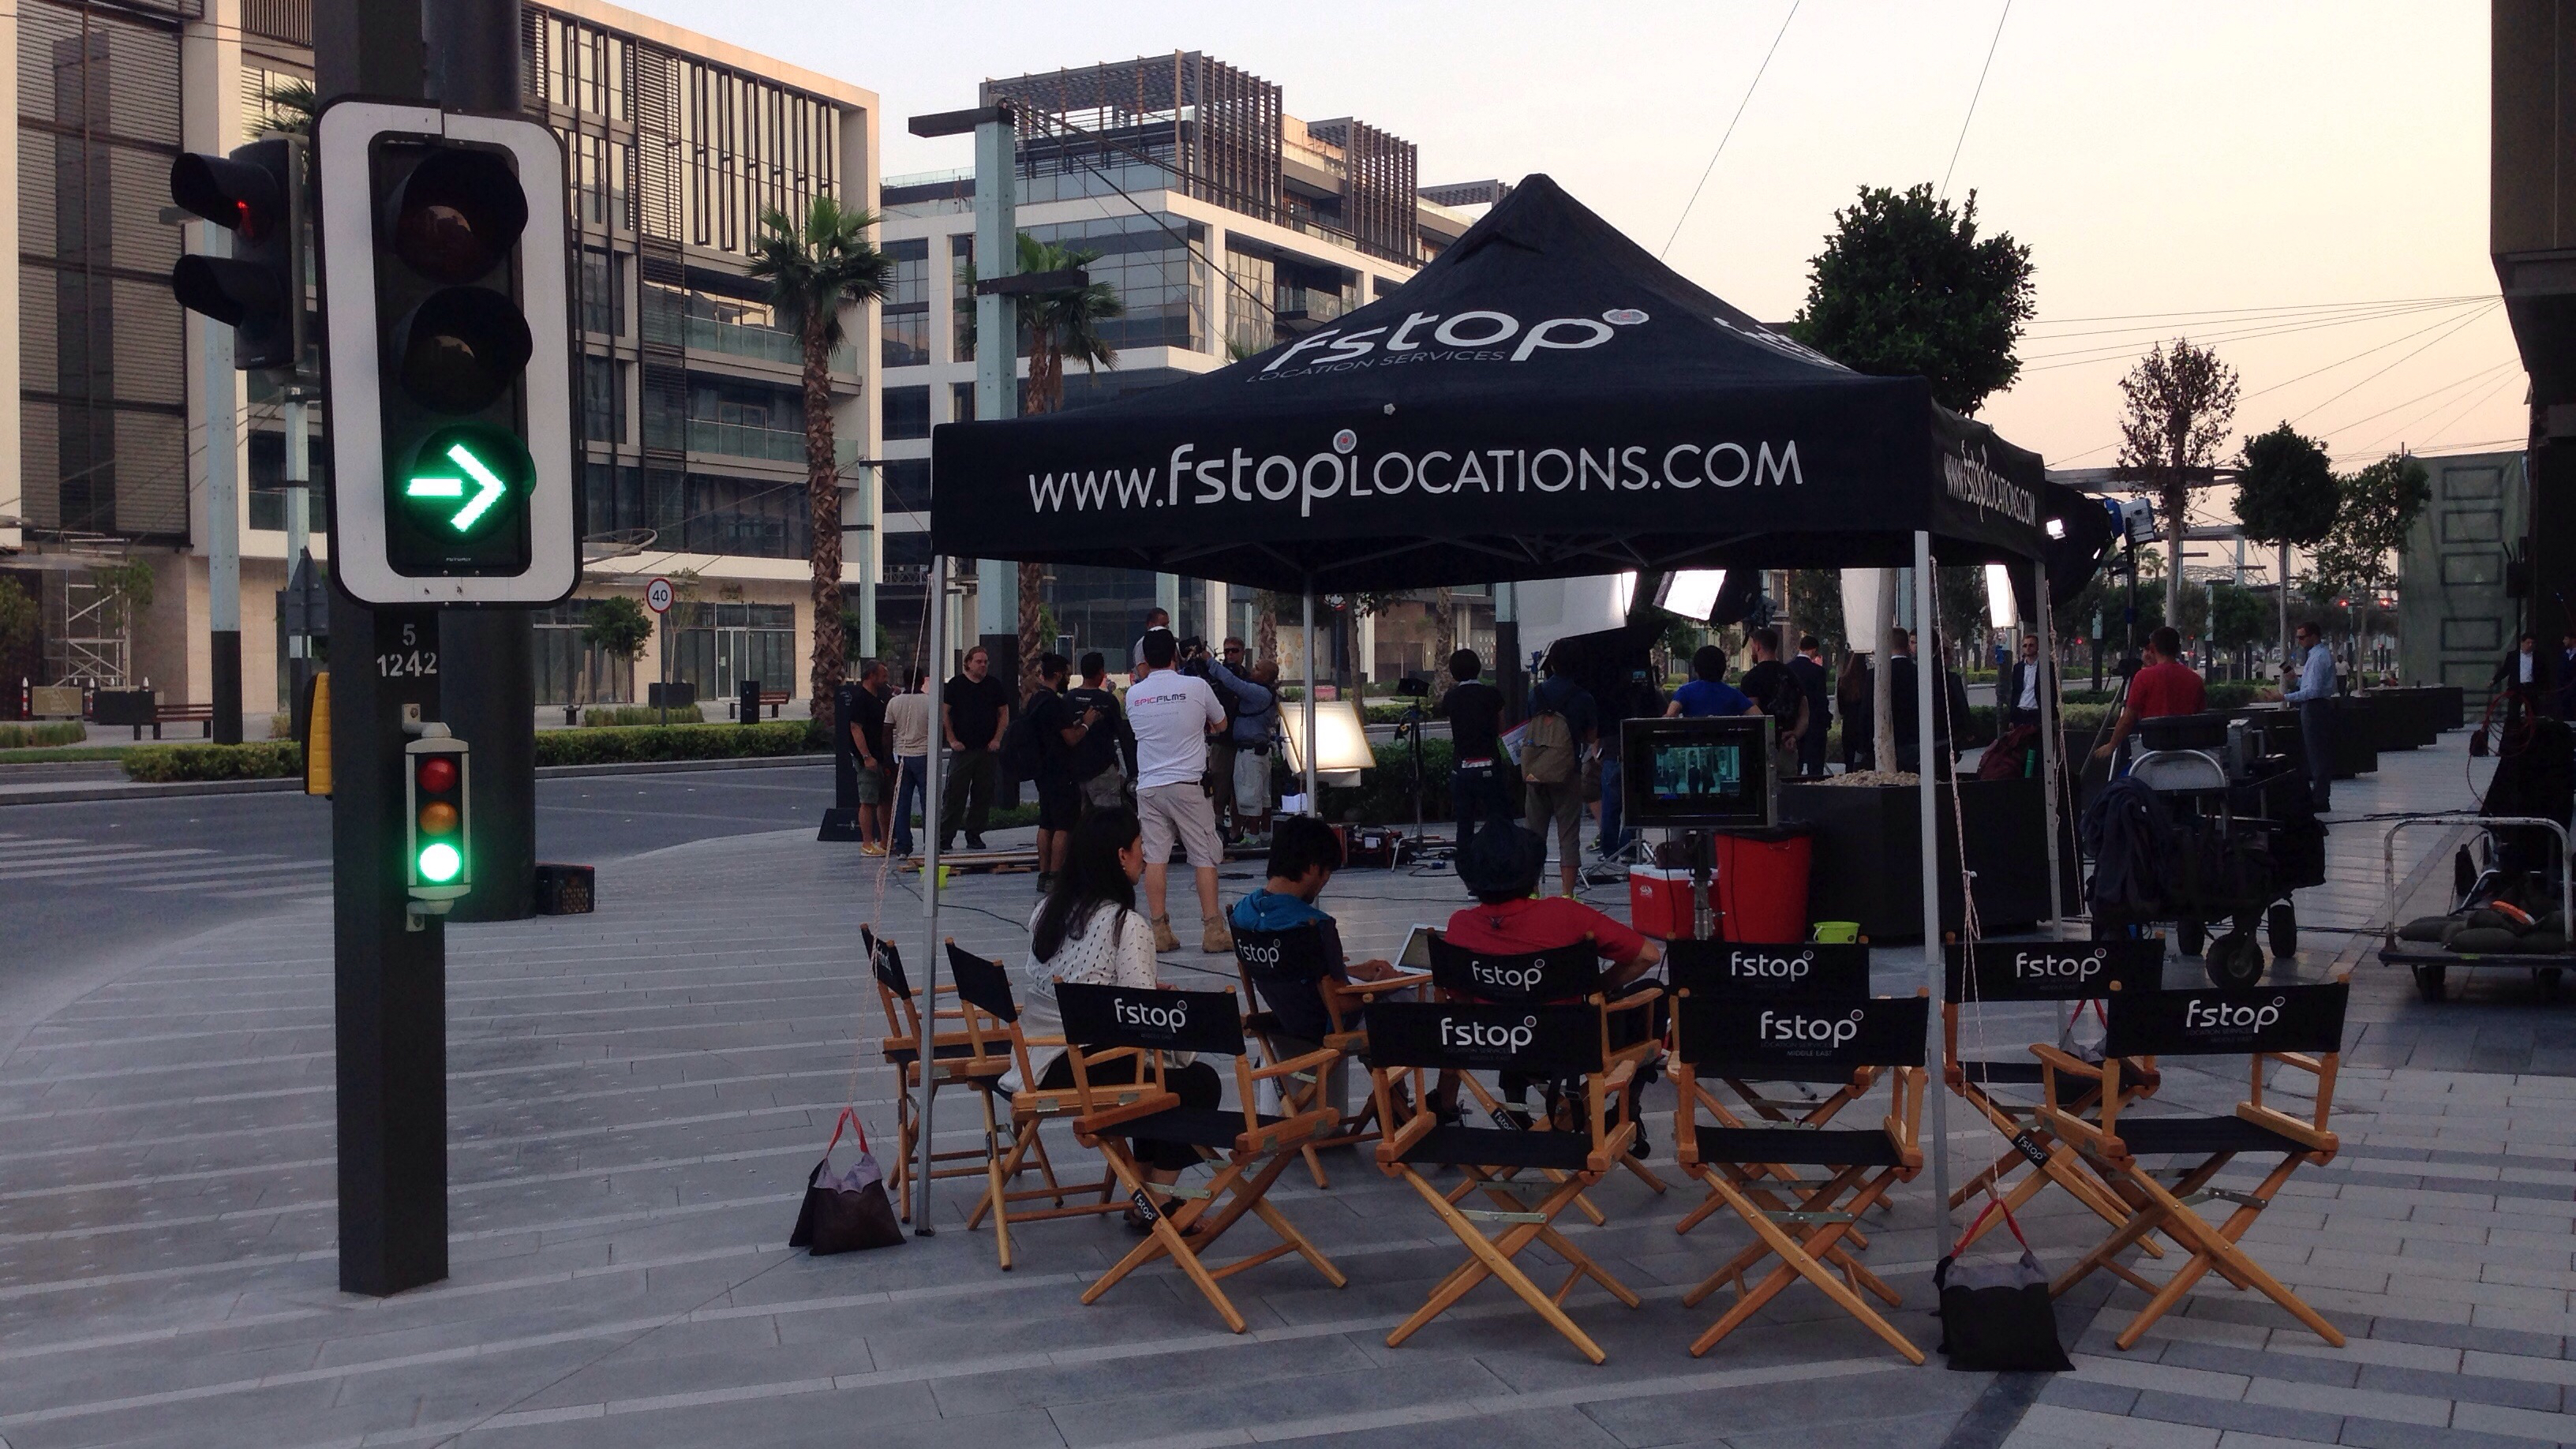 Fstop Location Images 1